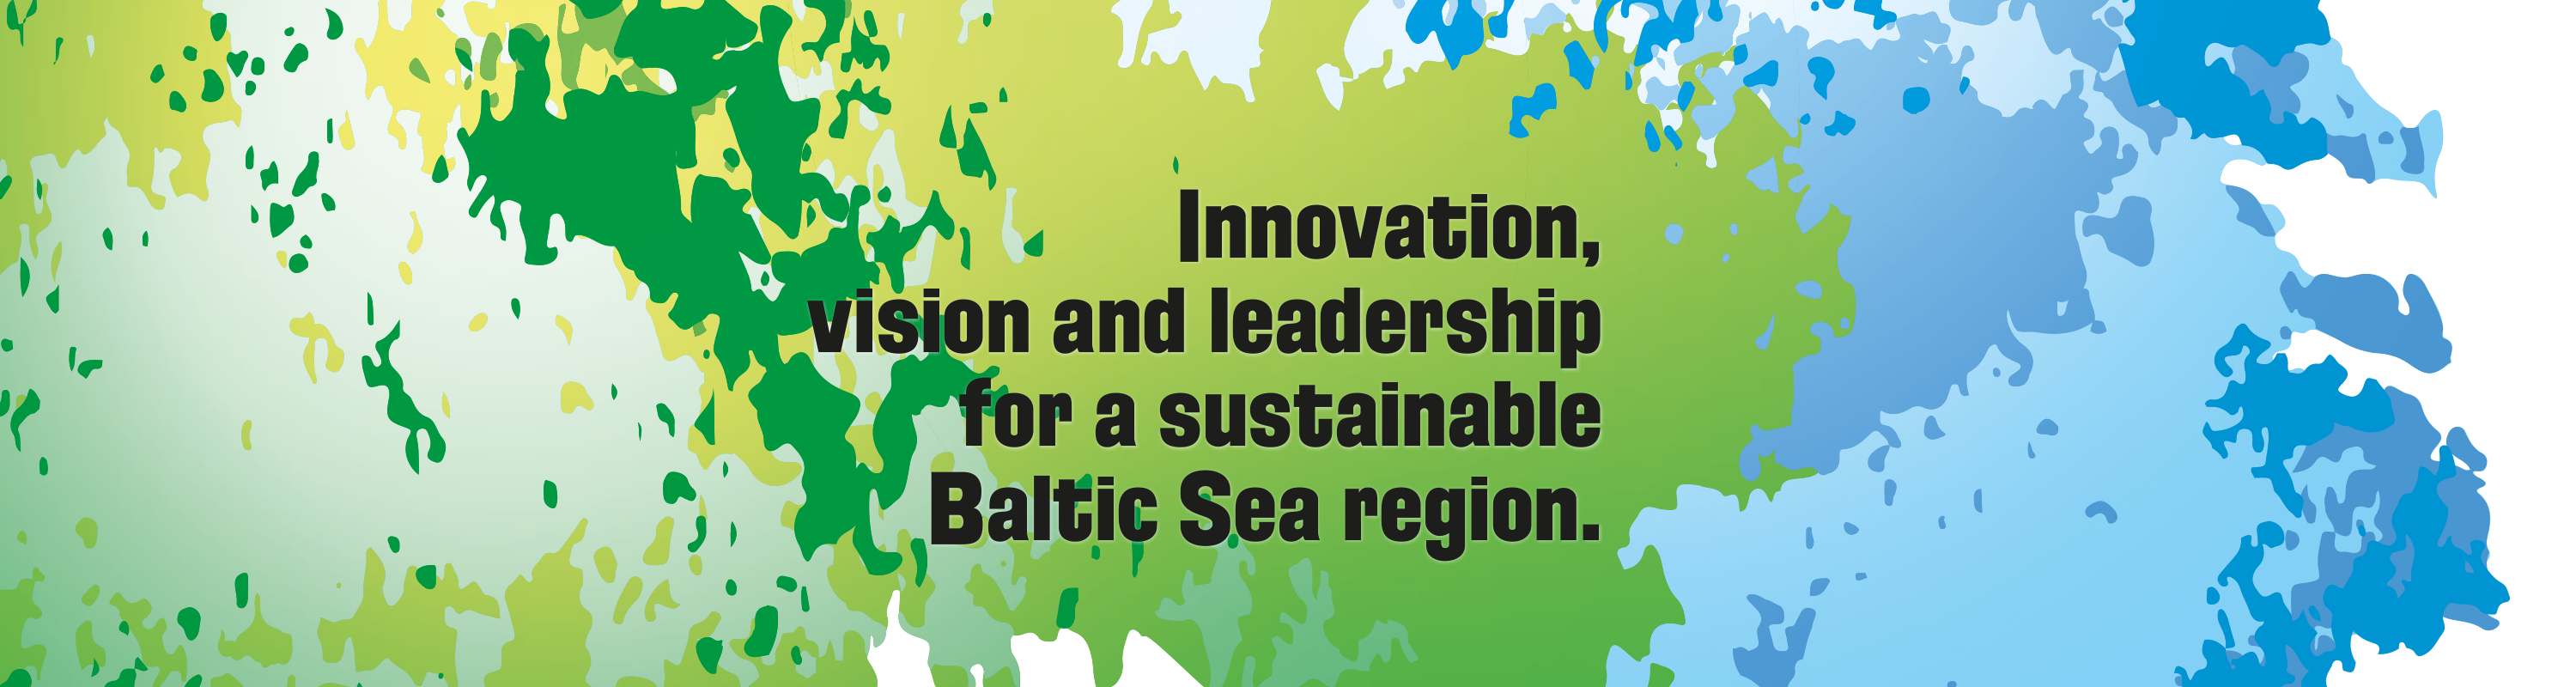 Header image for Baltic Sea Future